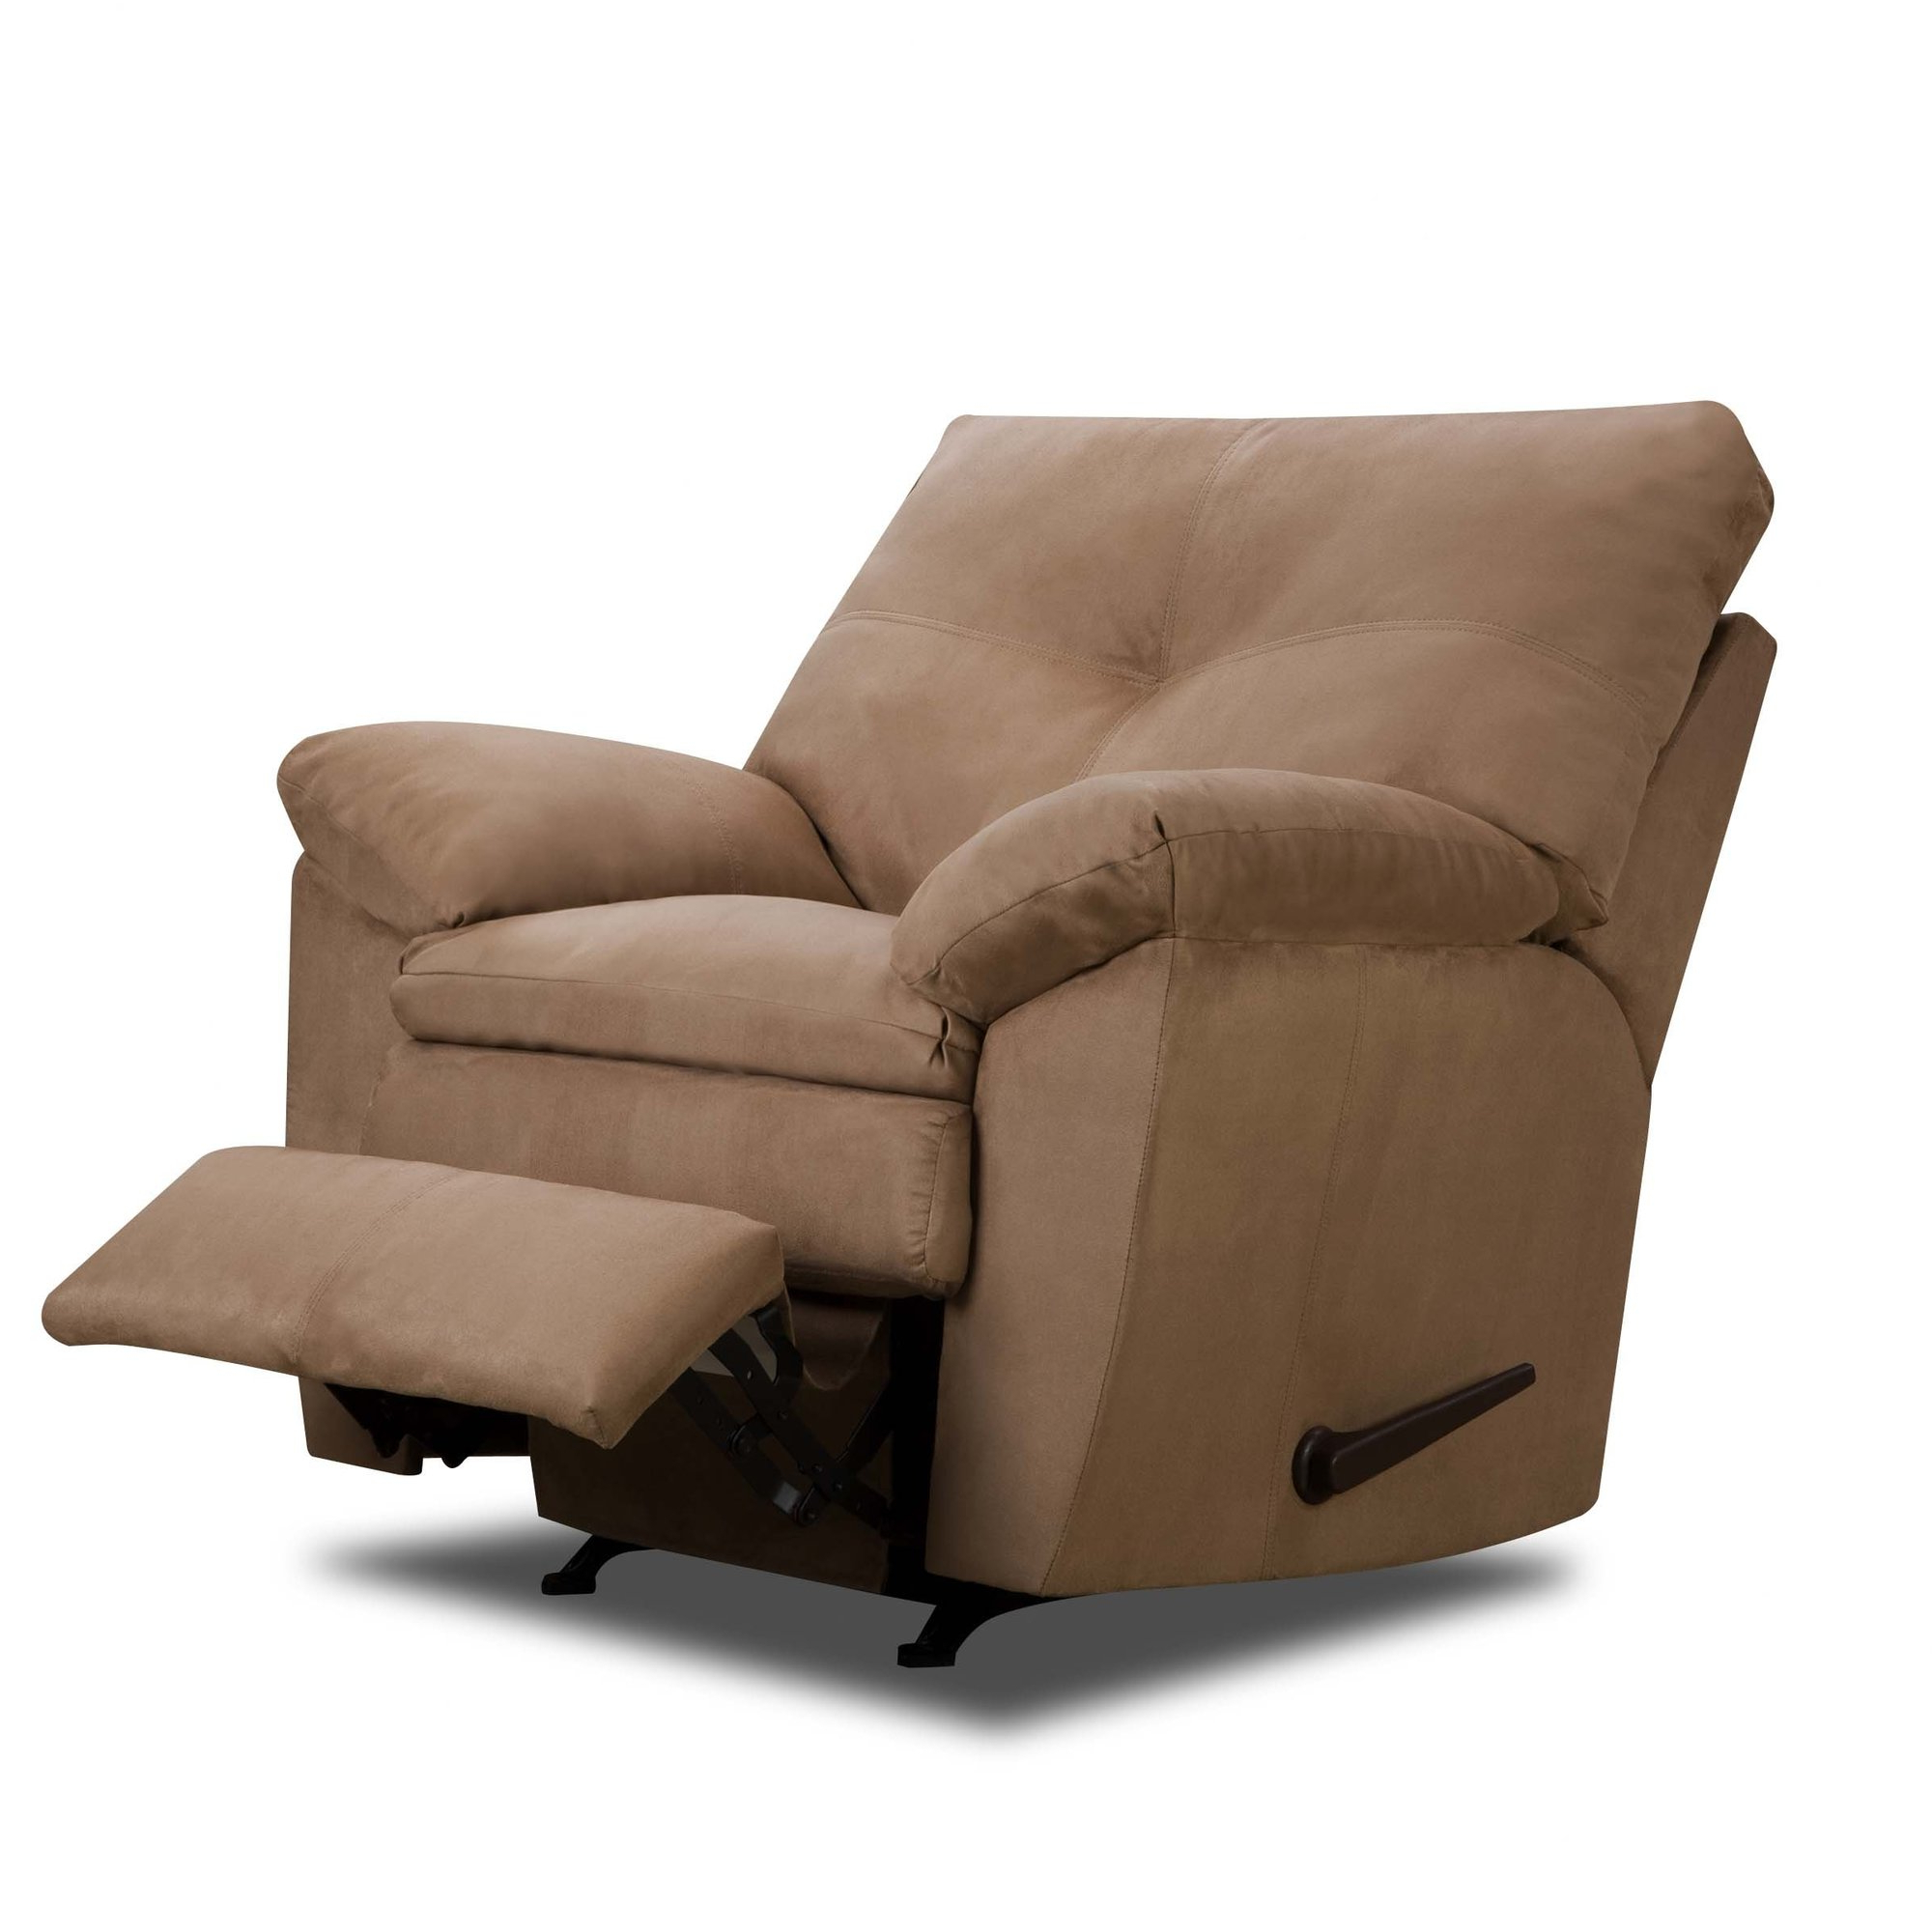 Furniture: Surprising Simmons Recliners For Contemporary Living Room Within Well Liked Rogan Leather Cafe Latte Swivel Glider Recliners (View 11 of 20)